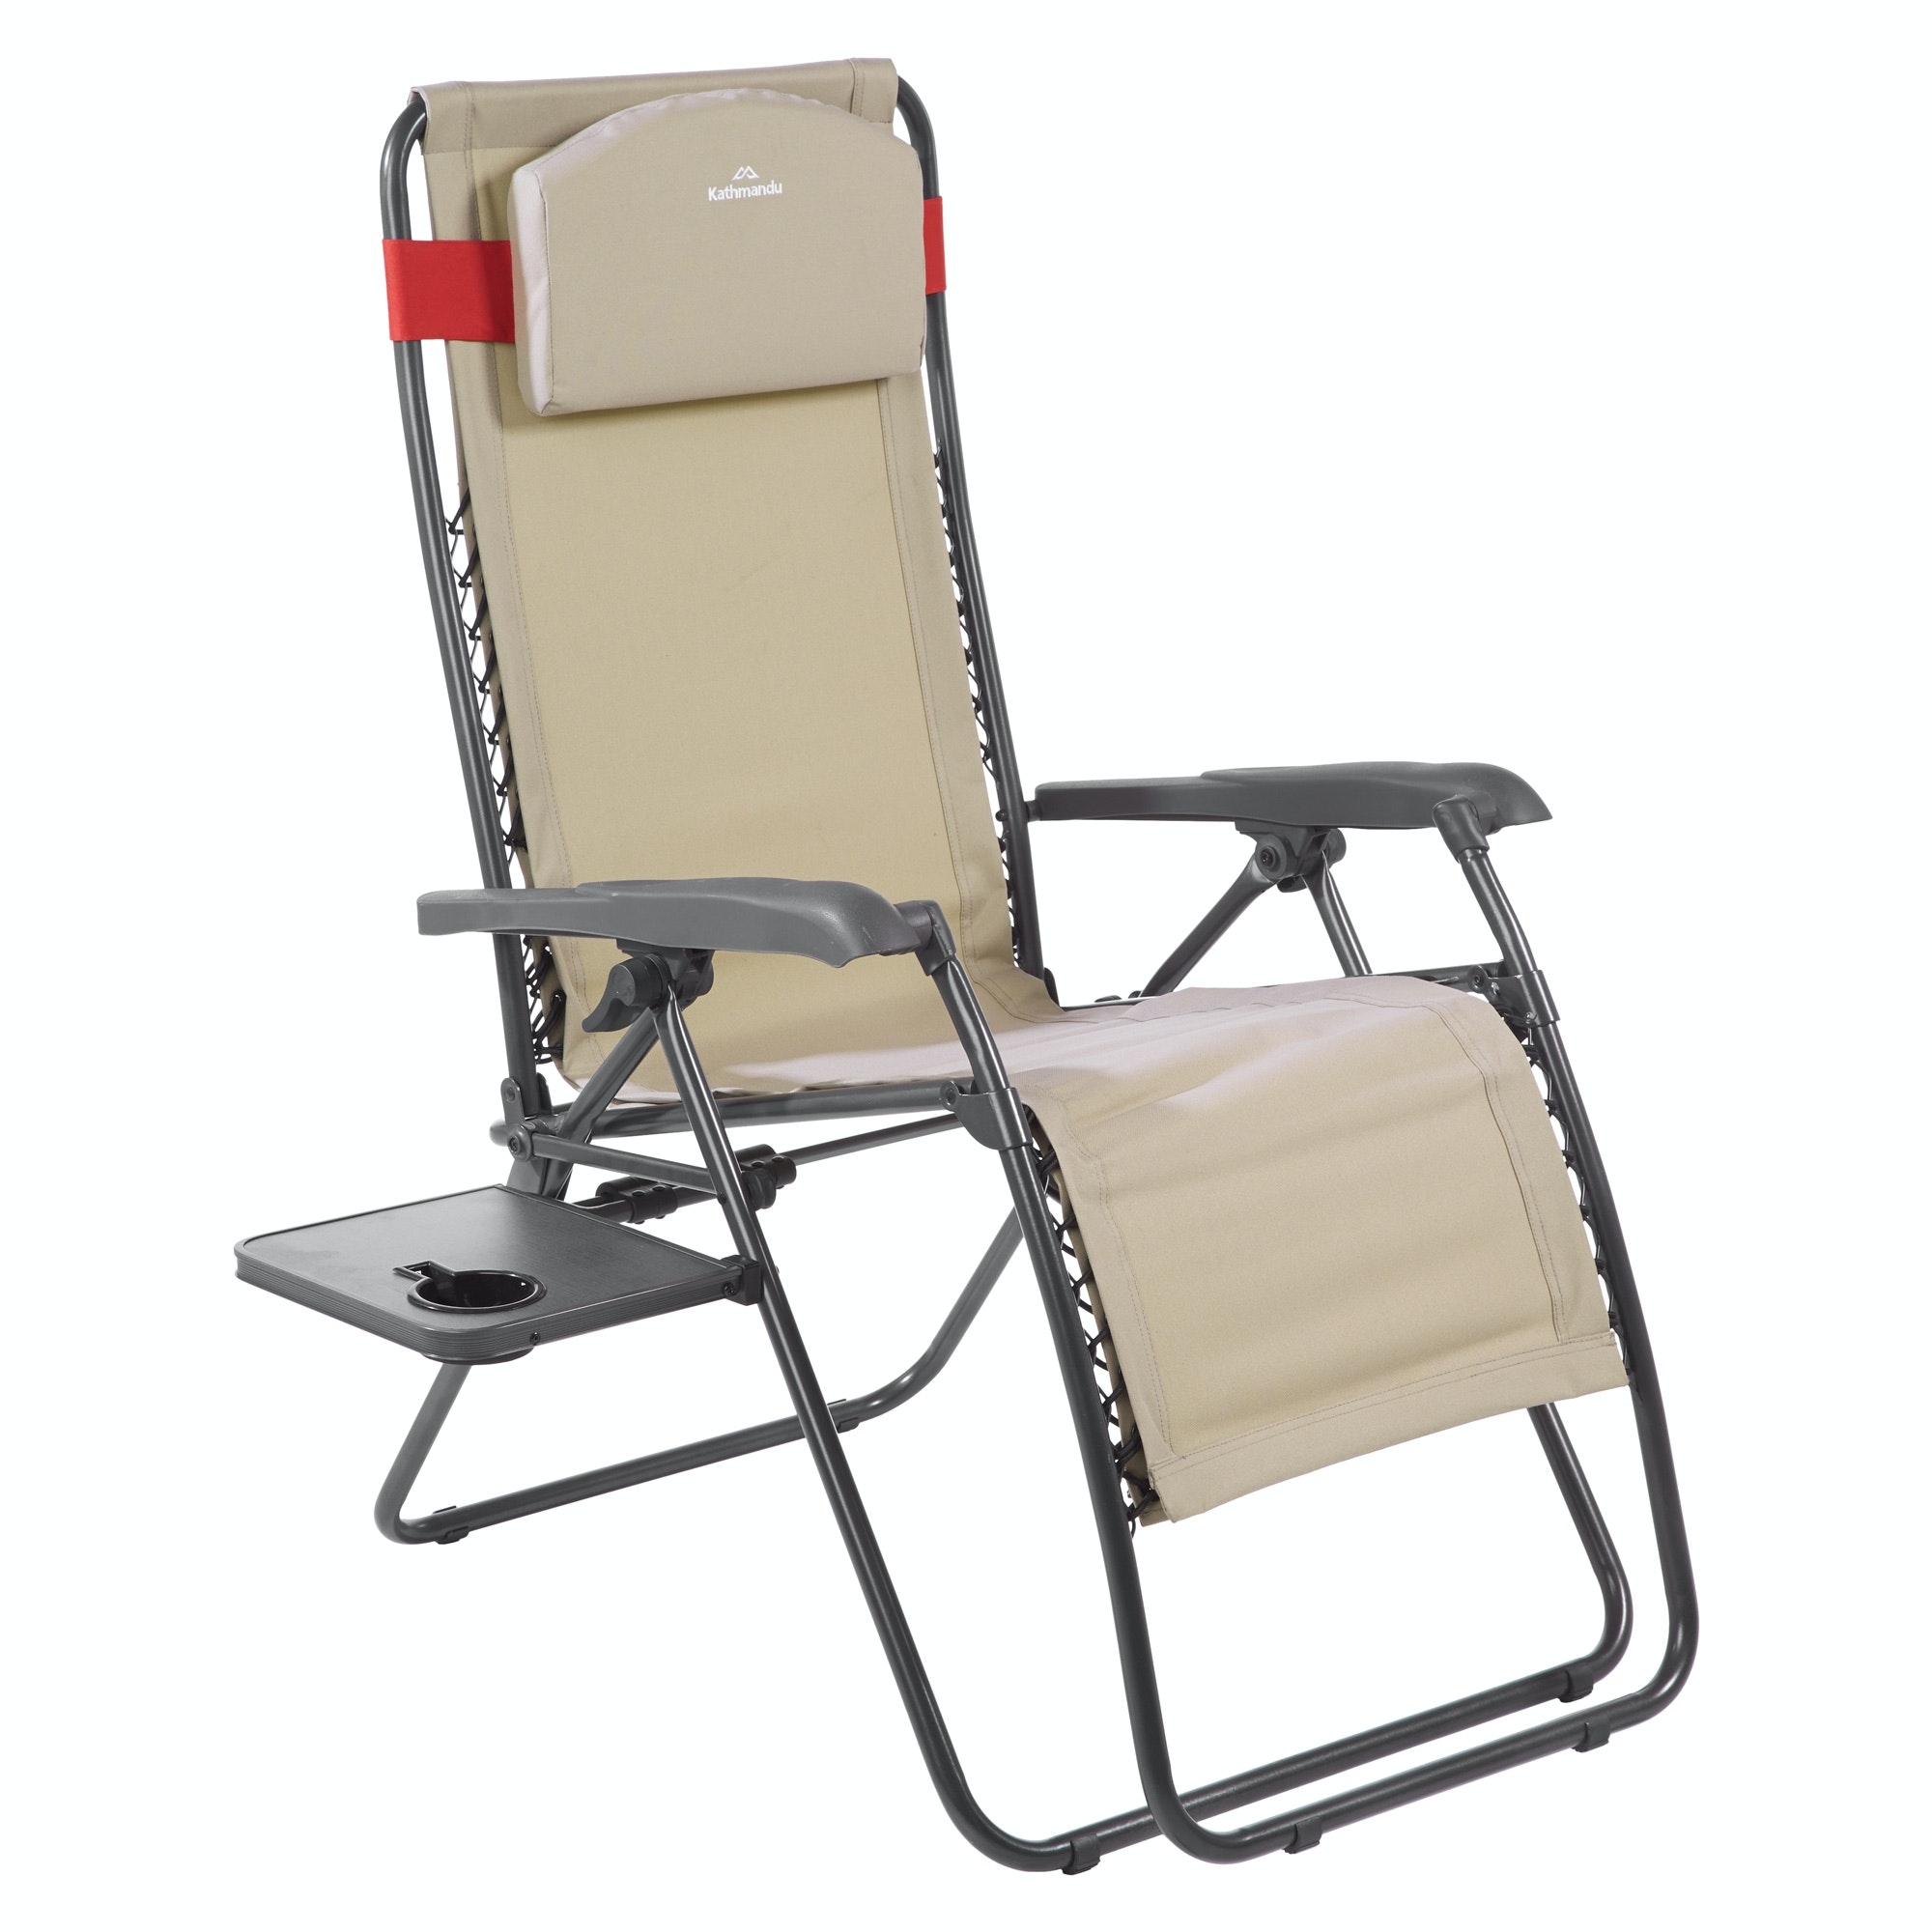 cabana cabanalounger chair clearance lounger